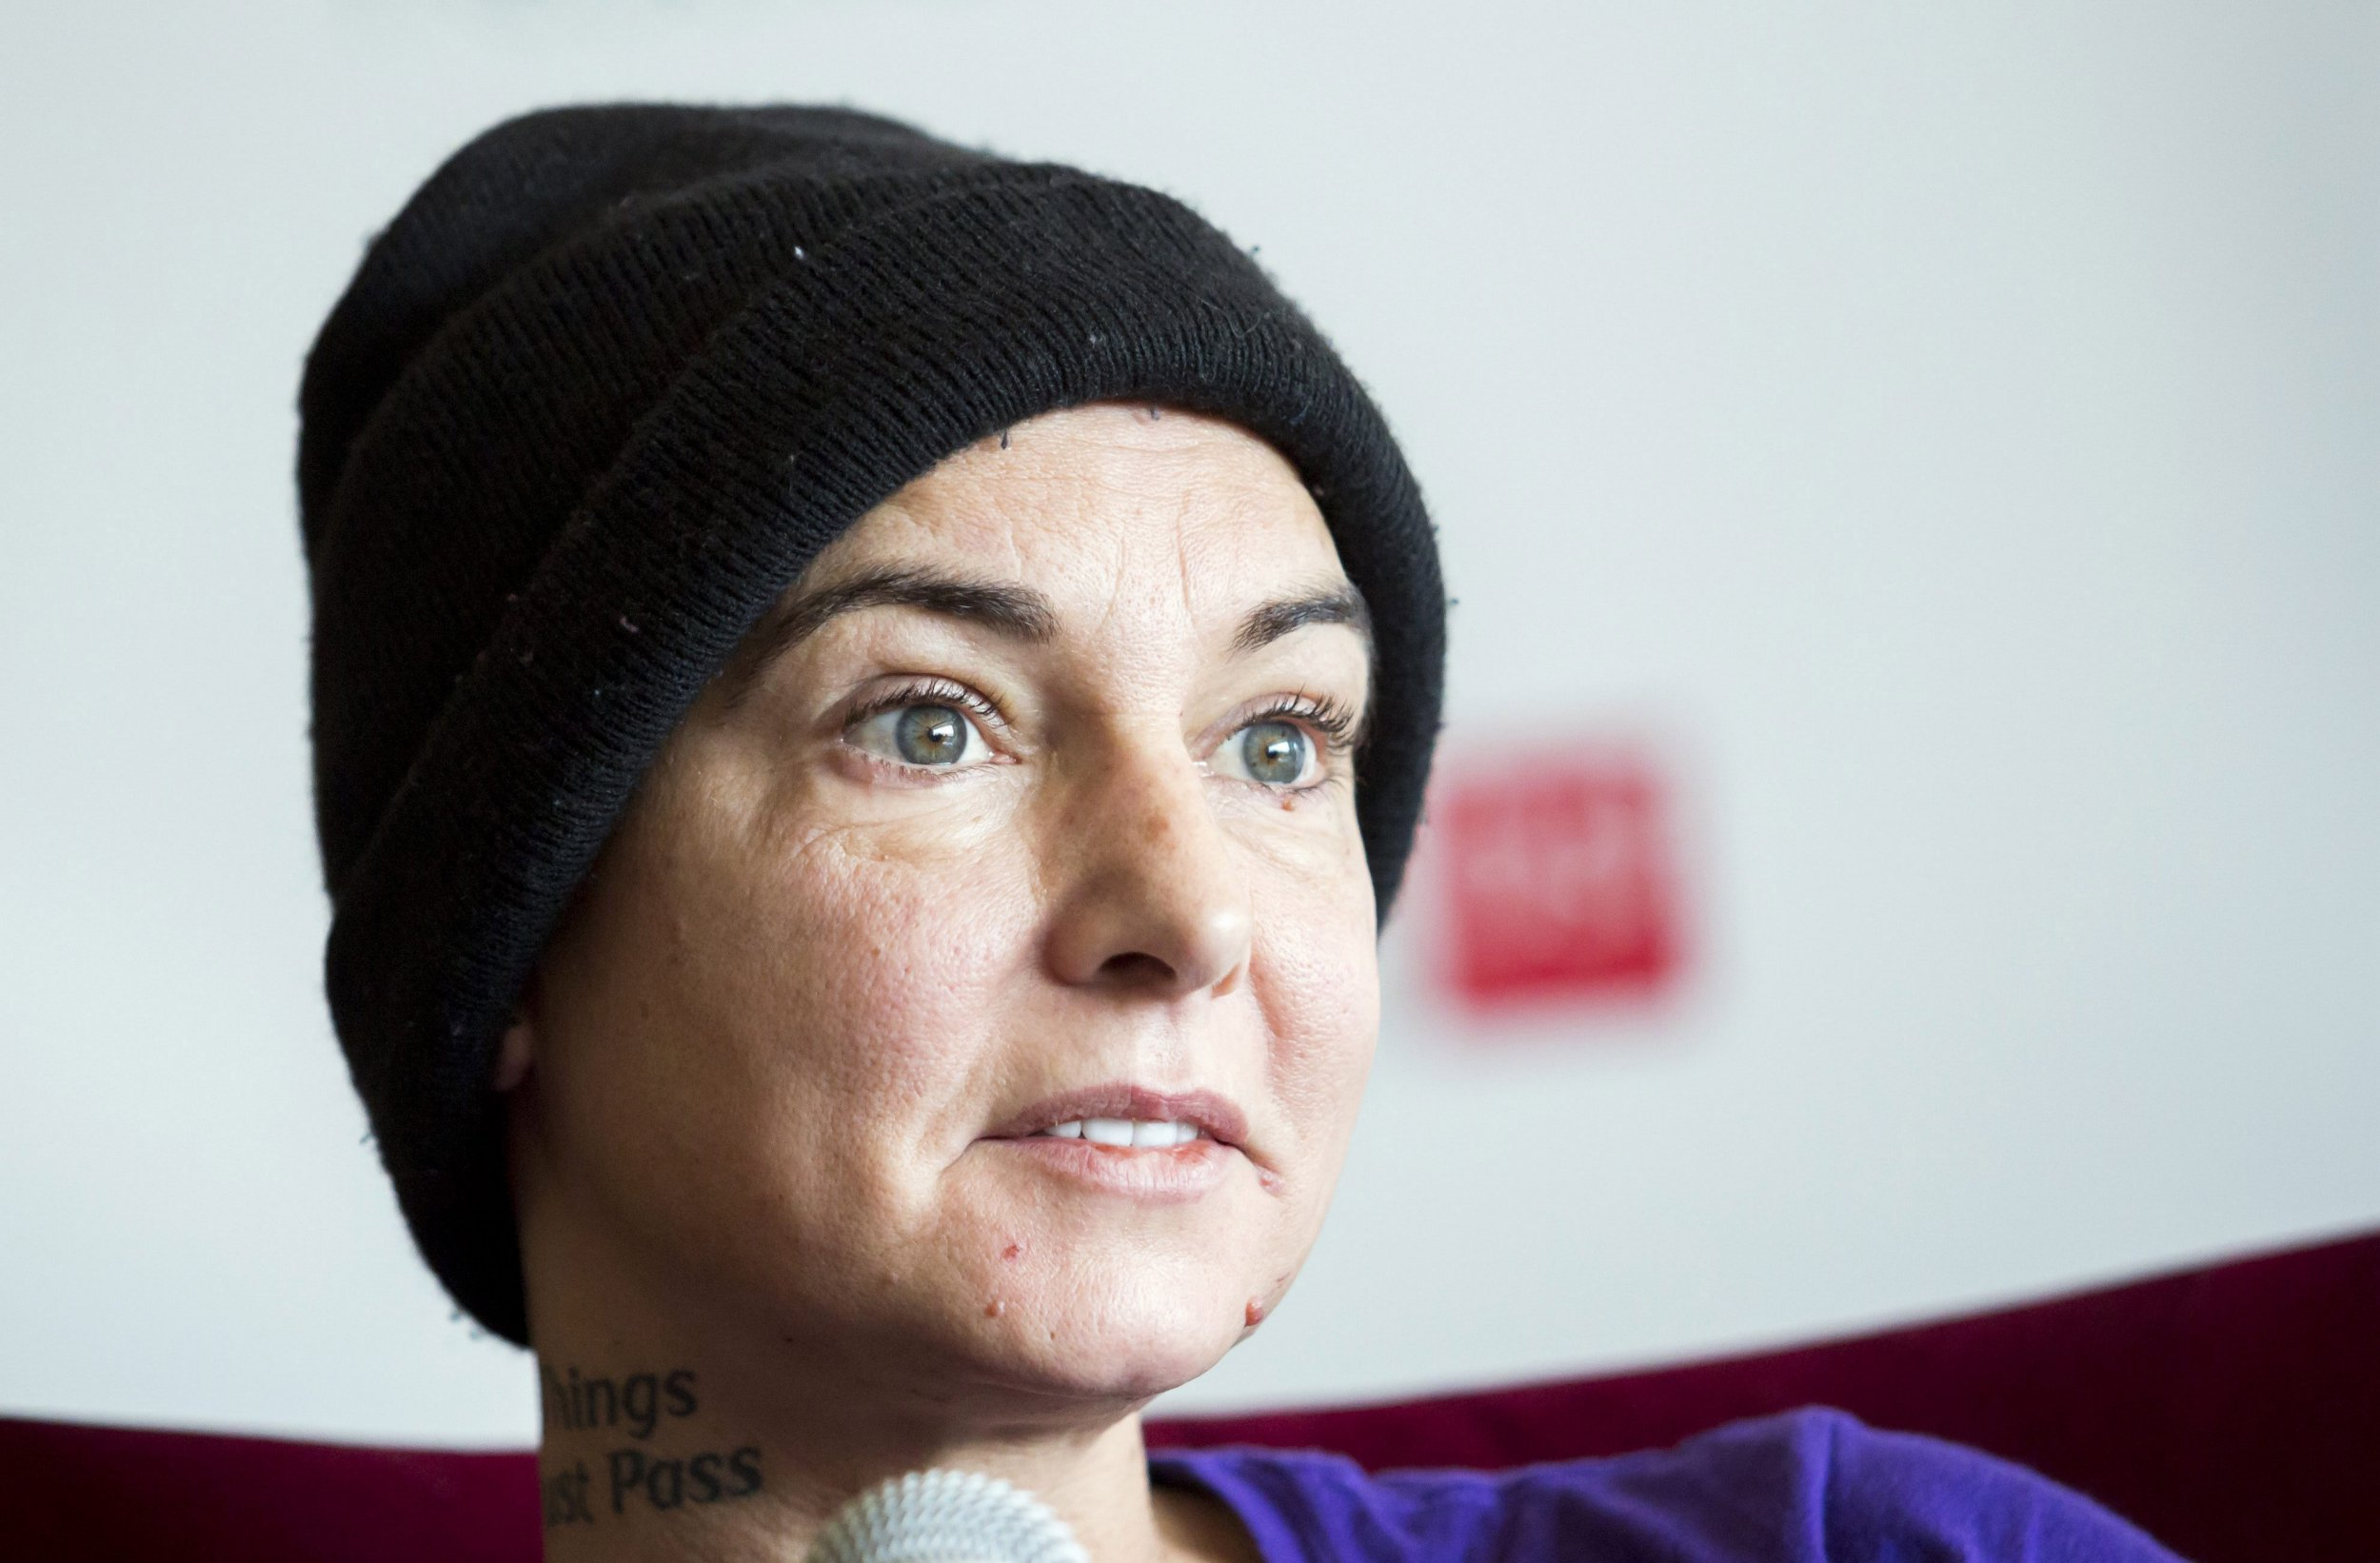 epa07120850 (FILE) - Irish singer-songwriter Sinead O'Connor attends a press event during the Budapest Spring Festival in the Marriott Hotel in Budapest, Hungary, 22 April 2015 (reissued 26 October 2018). According to media reports, Sinead O'Connor has announced her conversion to Islam, changing her name to Shuhada' Davitt on social media. EPA/BALAZS MOHAI HUNGARY OUT *** Local Caption *** 52760476